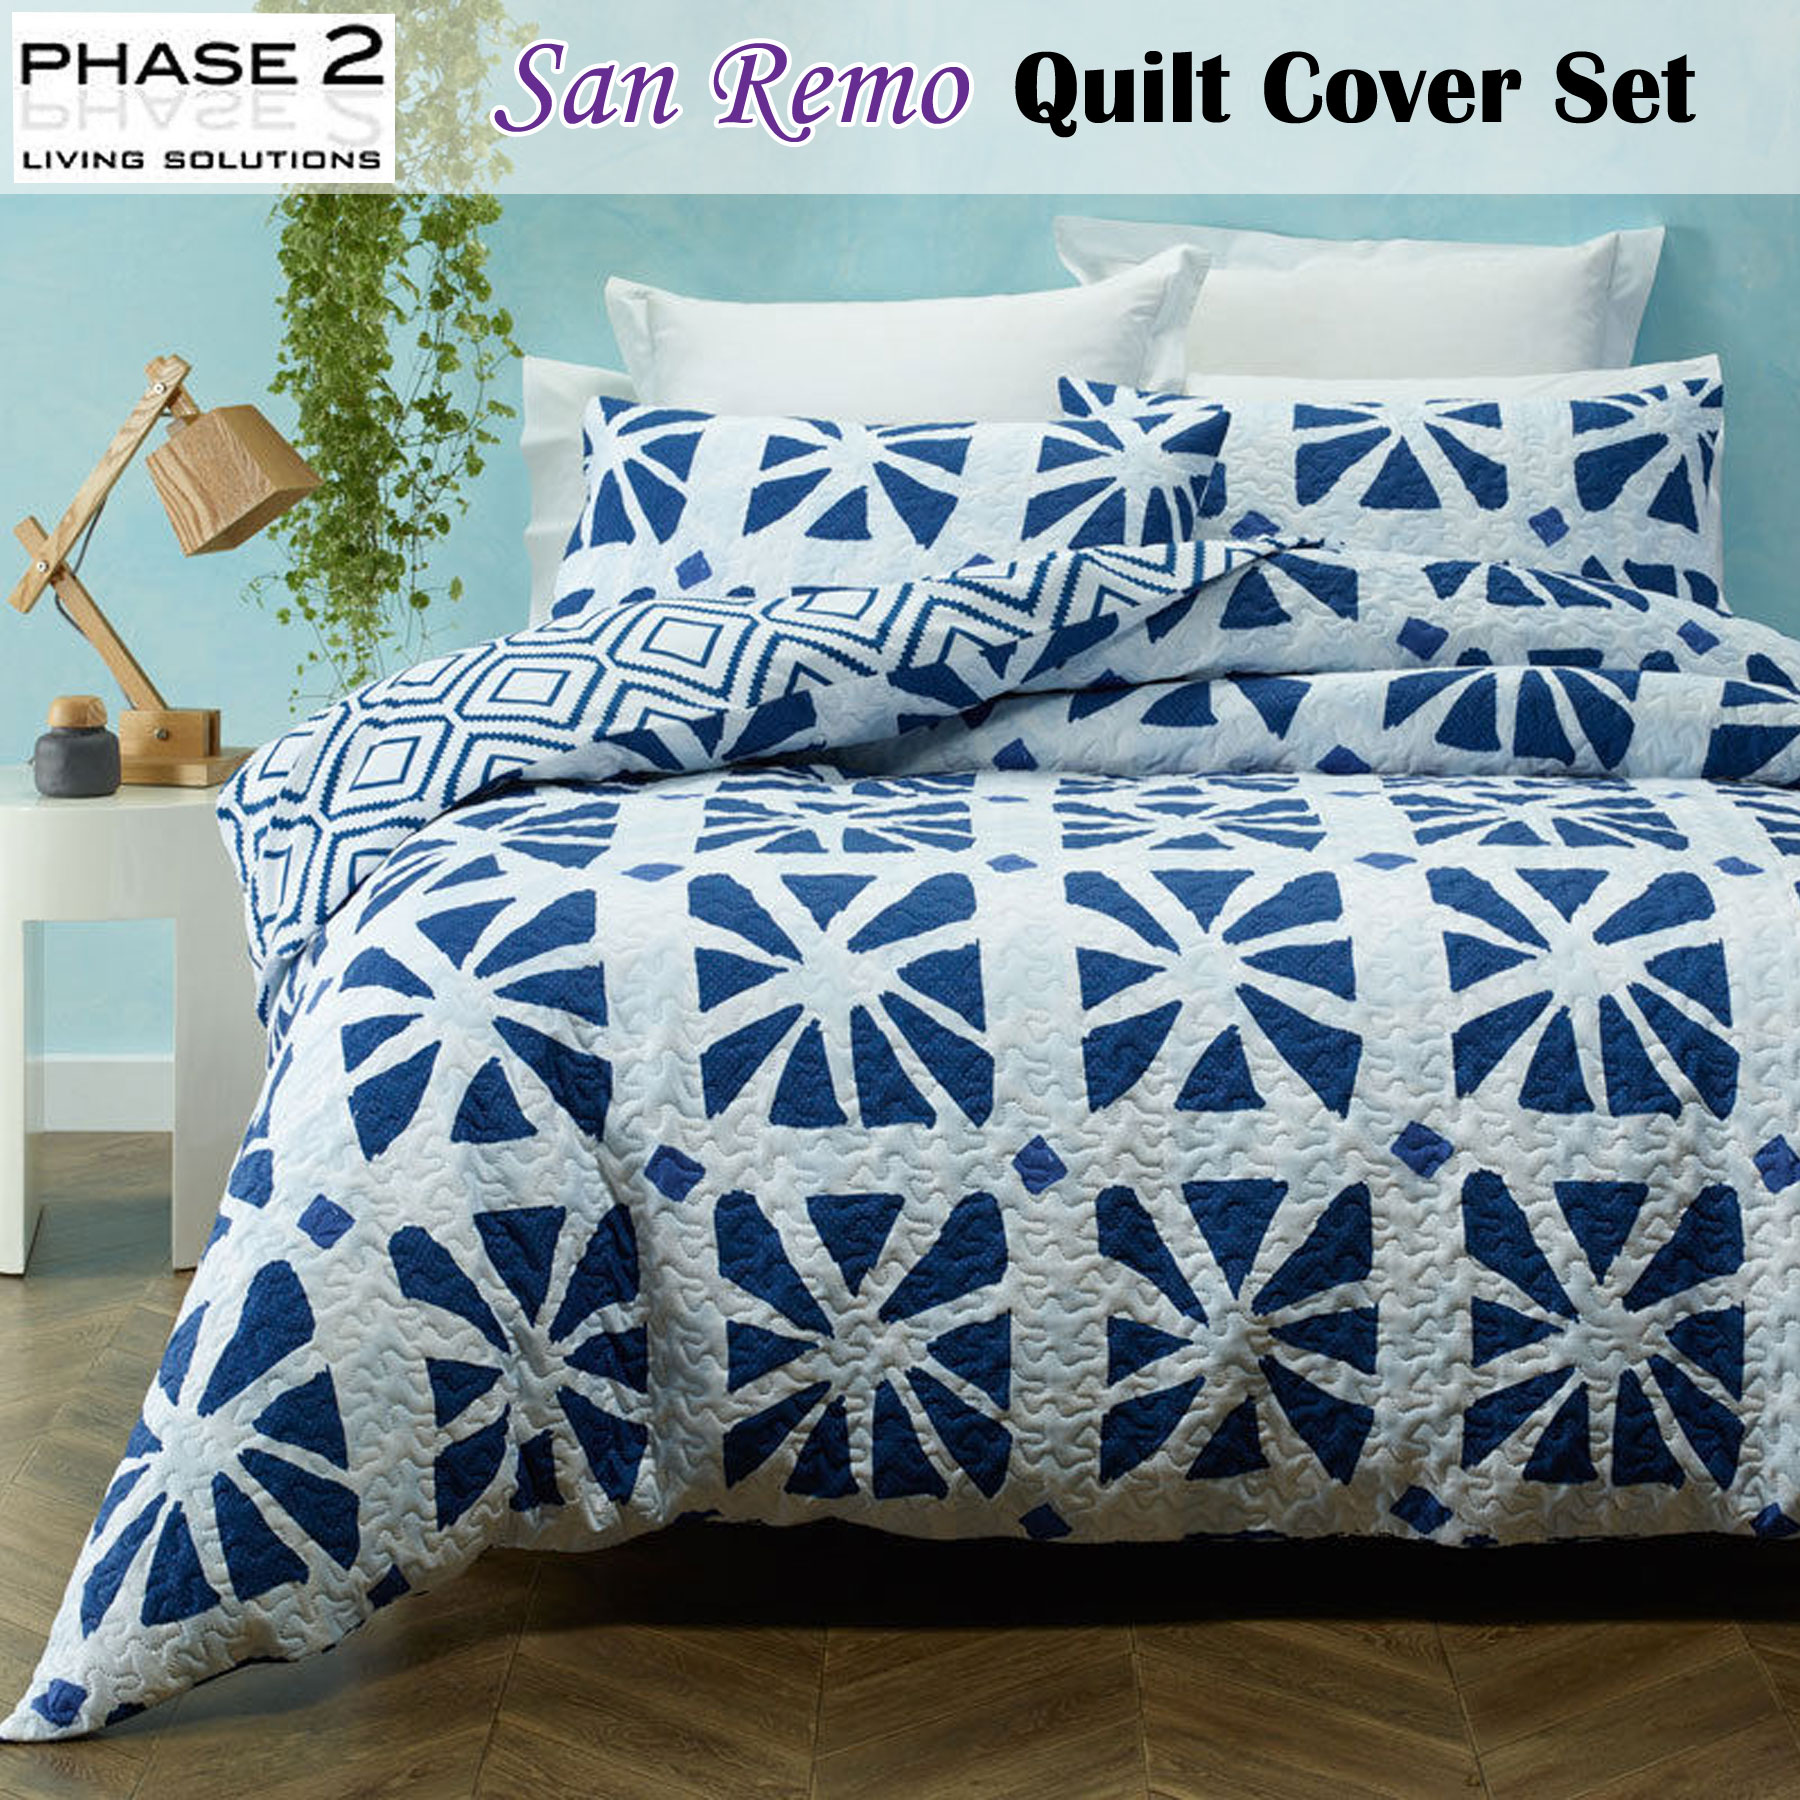 3 Pce Peillon Paisley Quilt Doona Duvet Cover Set by Phase 2 QUEEN KING